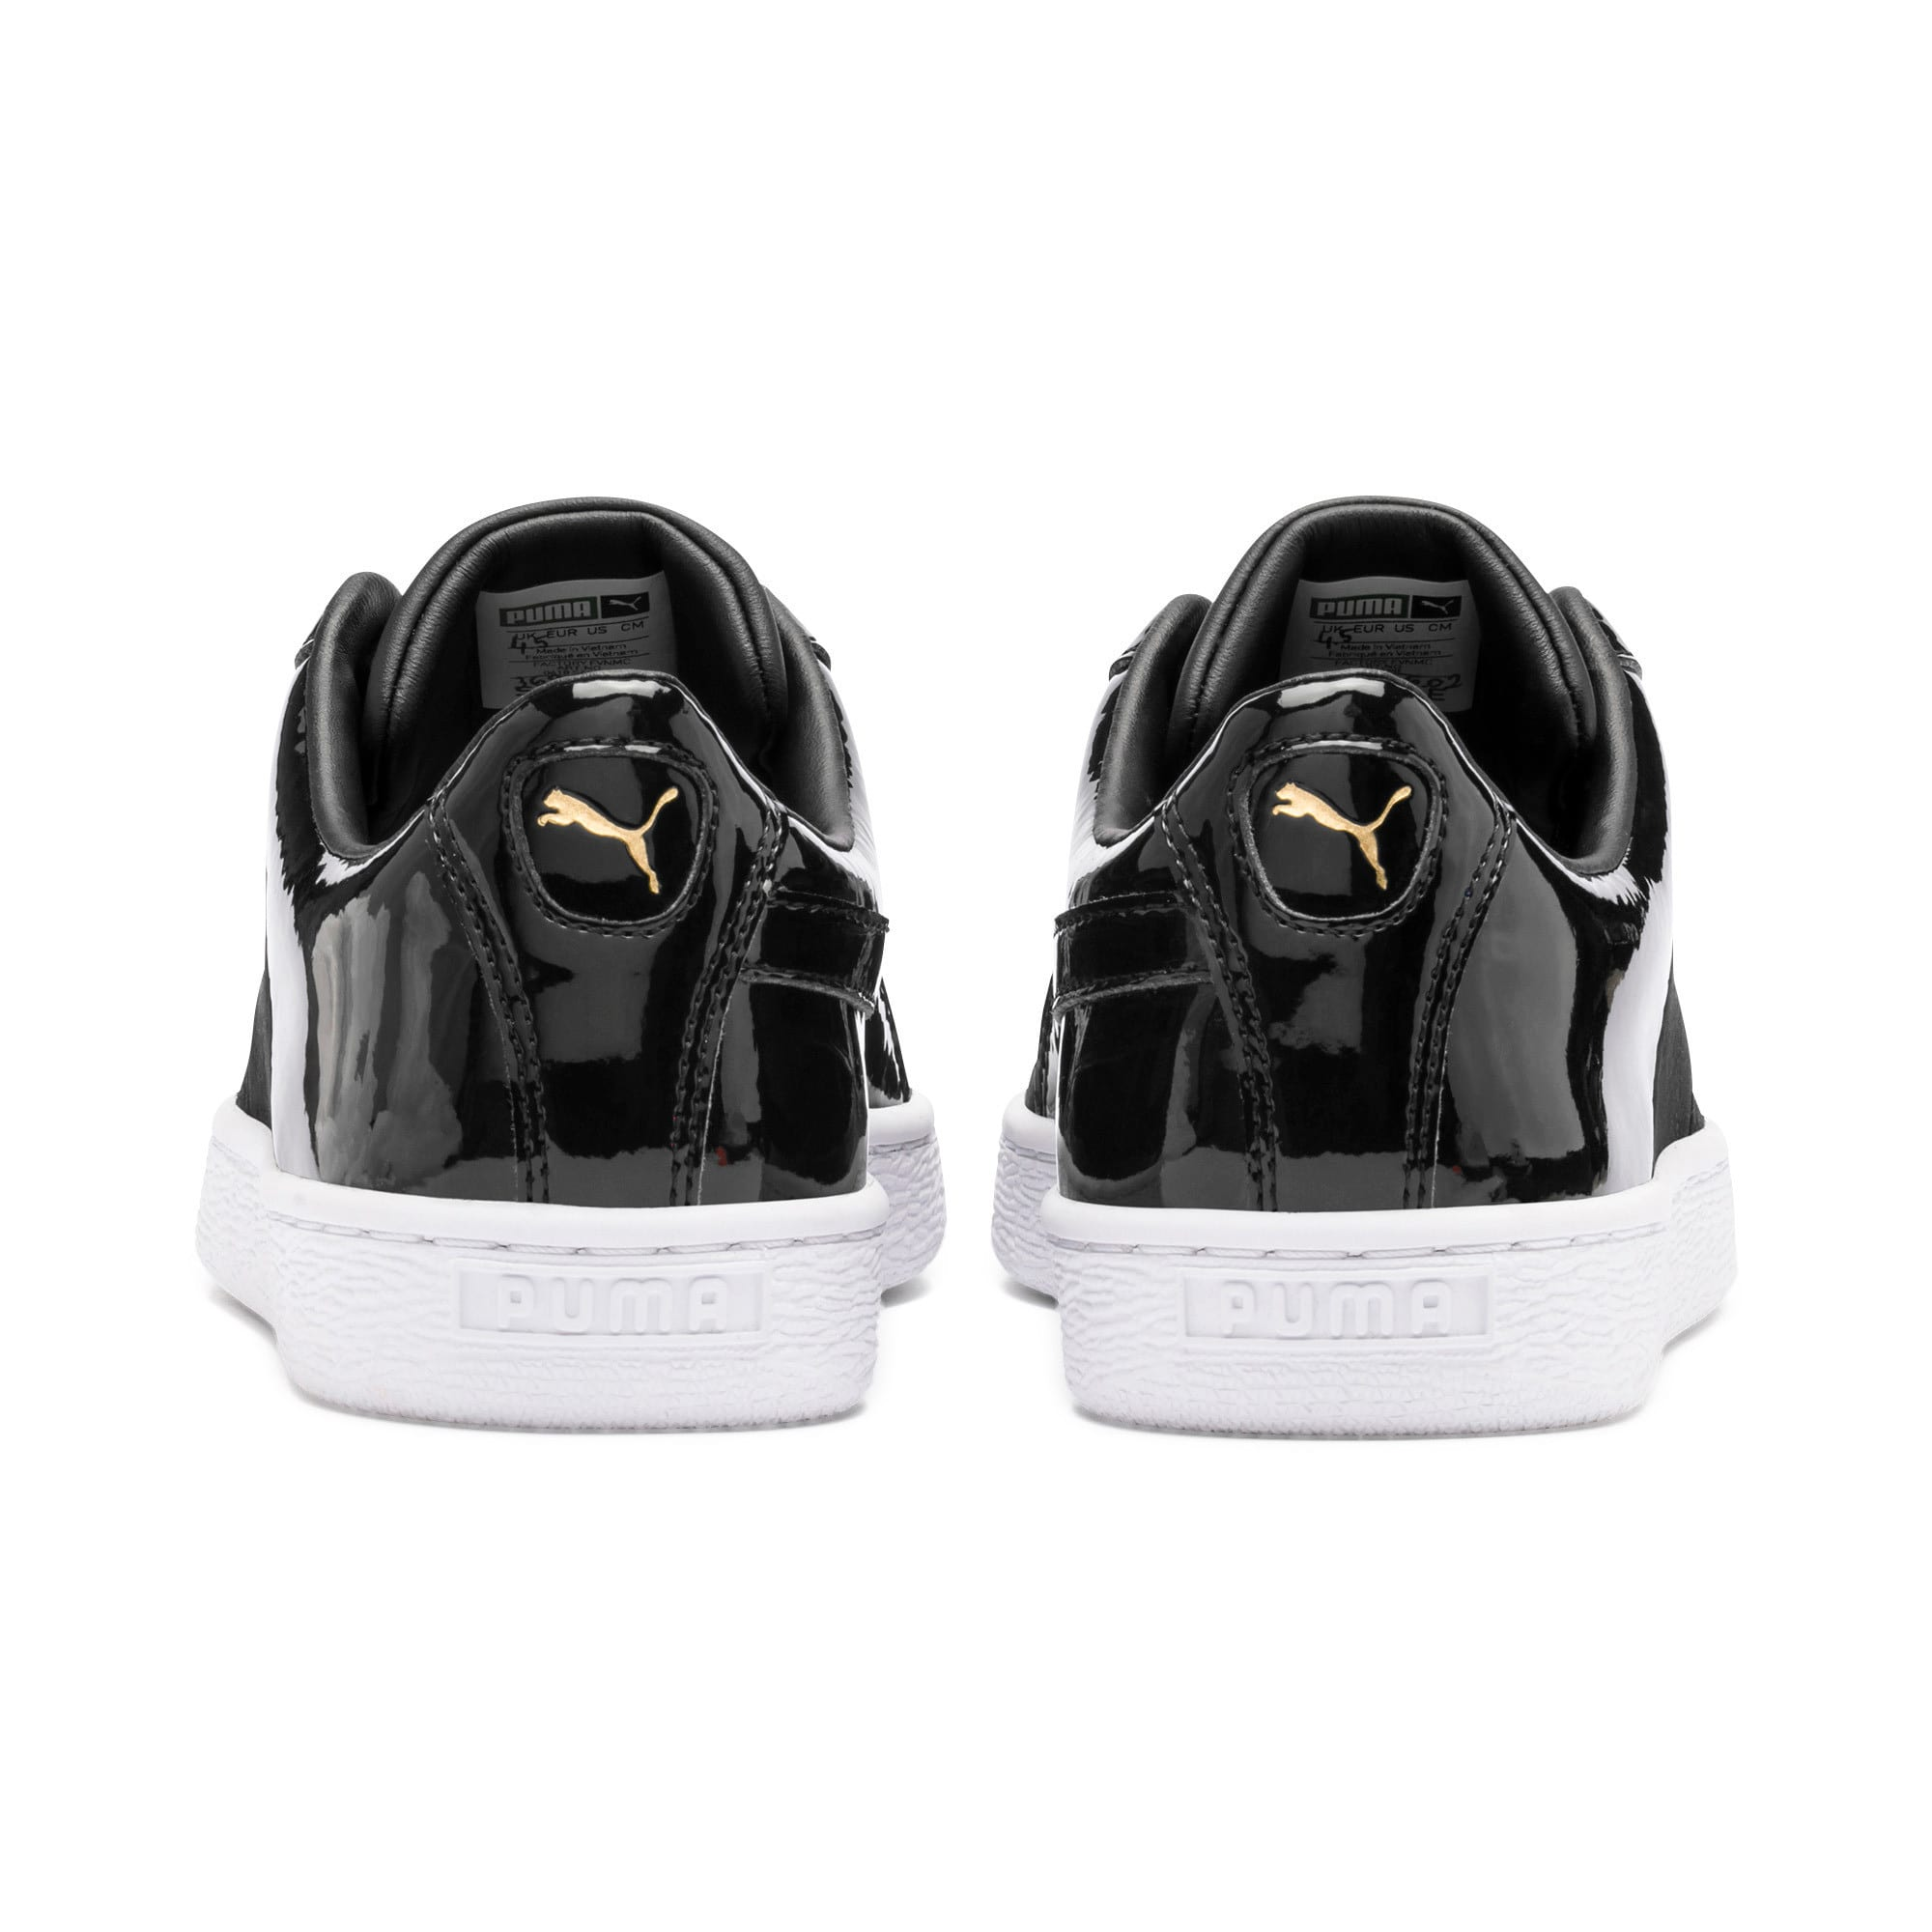 Thumbnail 4 of Basket Remix Women's Trainers, Puma Black-Puma Team Gold, medium